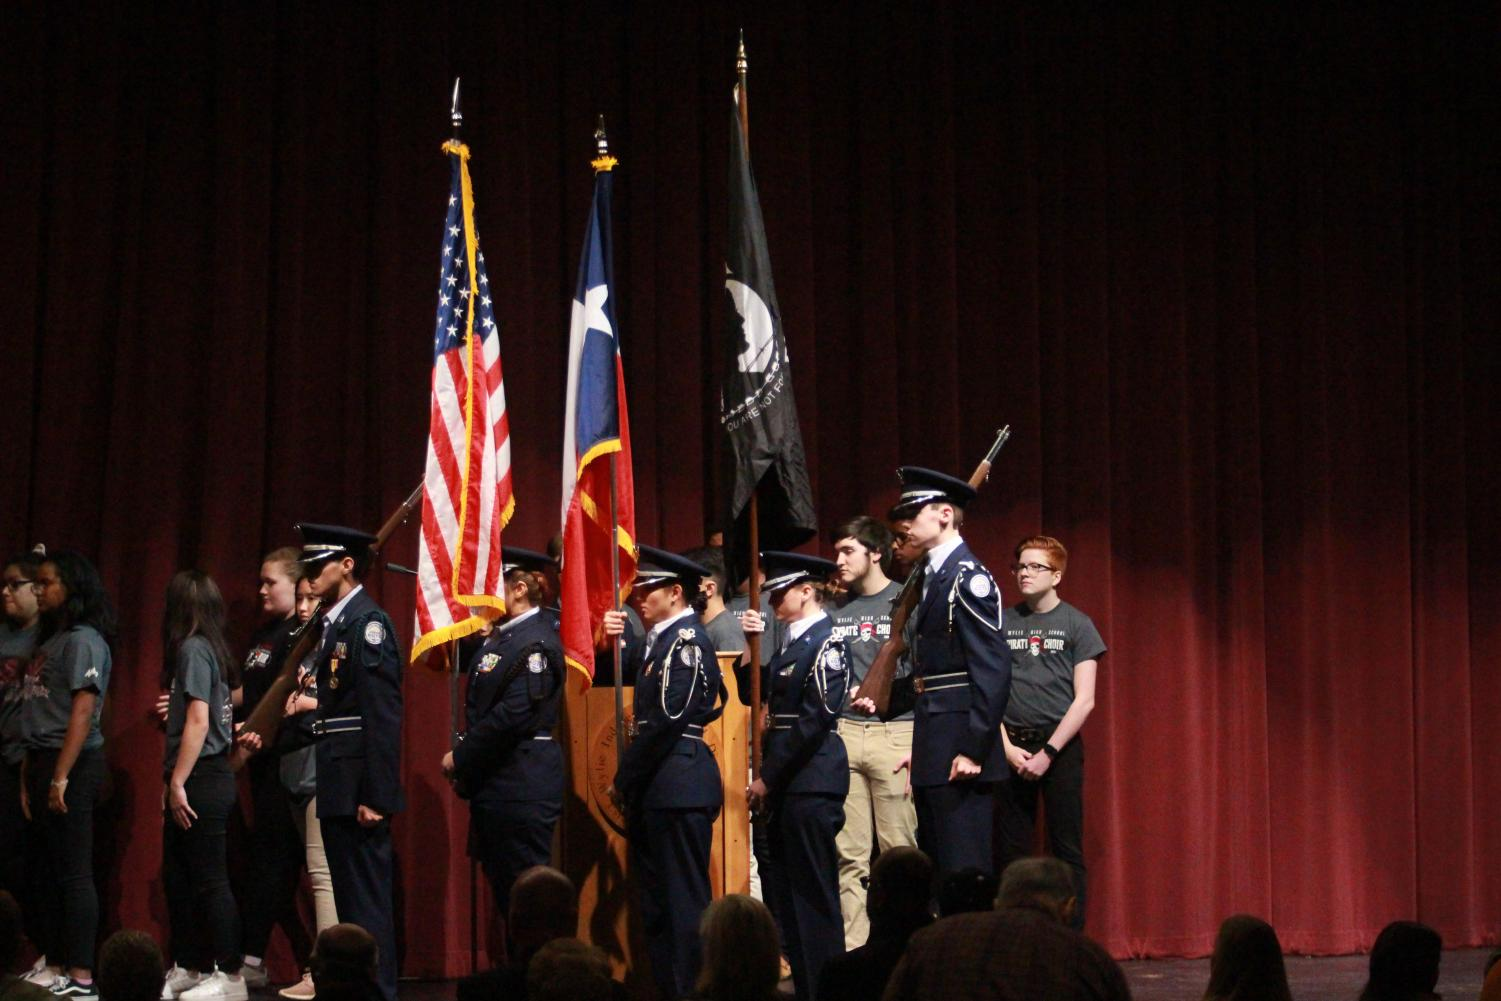 Change of scenery \ Cadets from both high schools honor veterans at the 18th annual Veterans Day Ceremony.  This year was the first time it was moved indoors due to inclement weather.